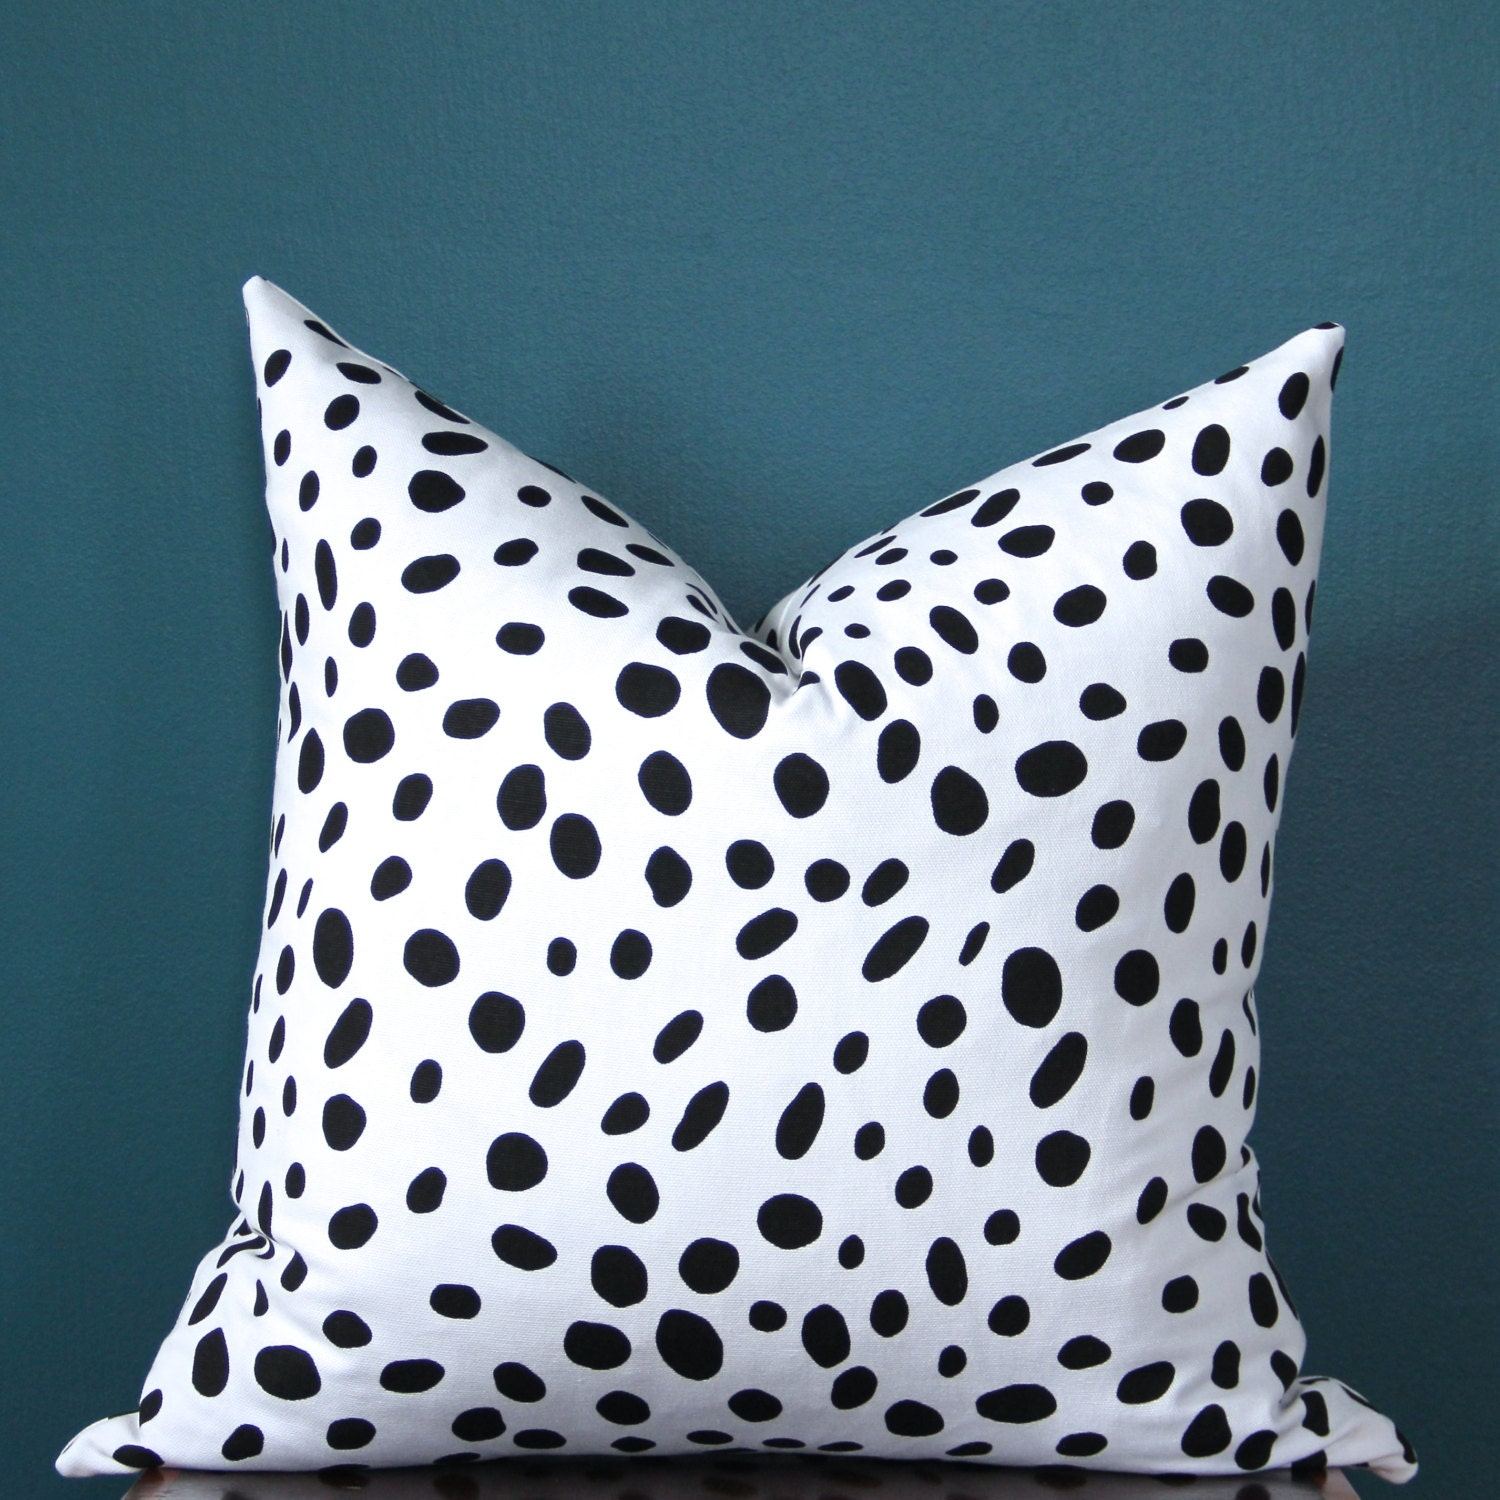 Trend Alert Dalmatian Print Home Decor: Spotted Pillow Cover Black And White Pillow Cover